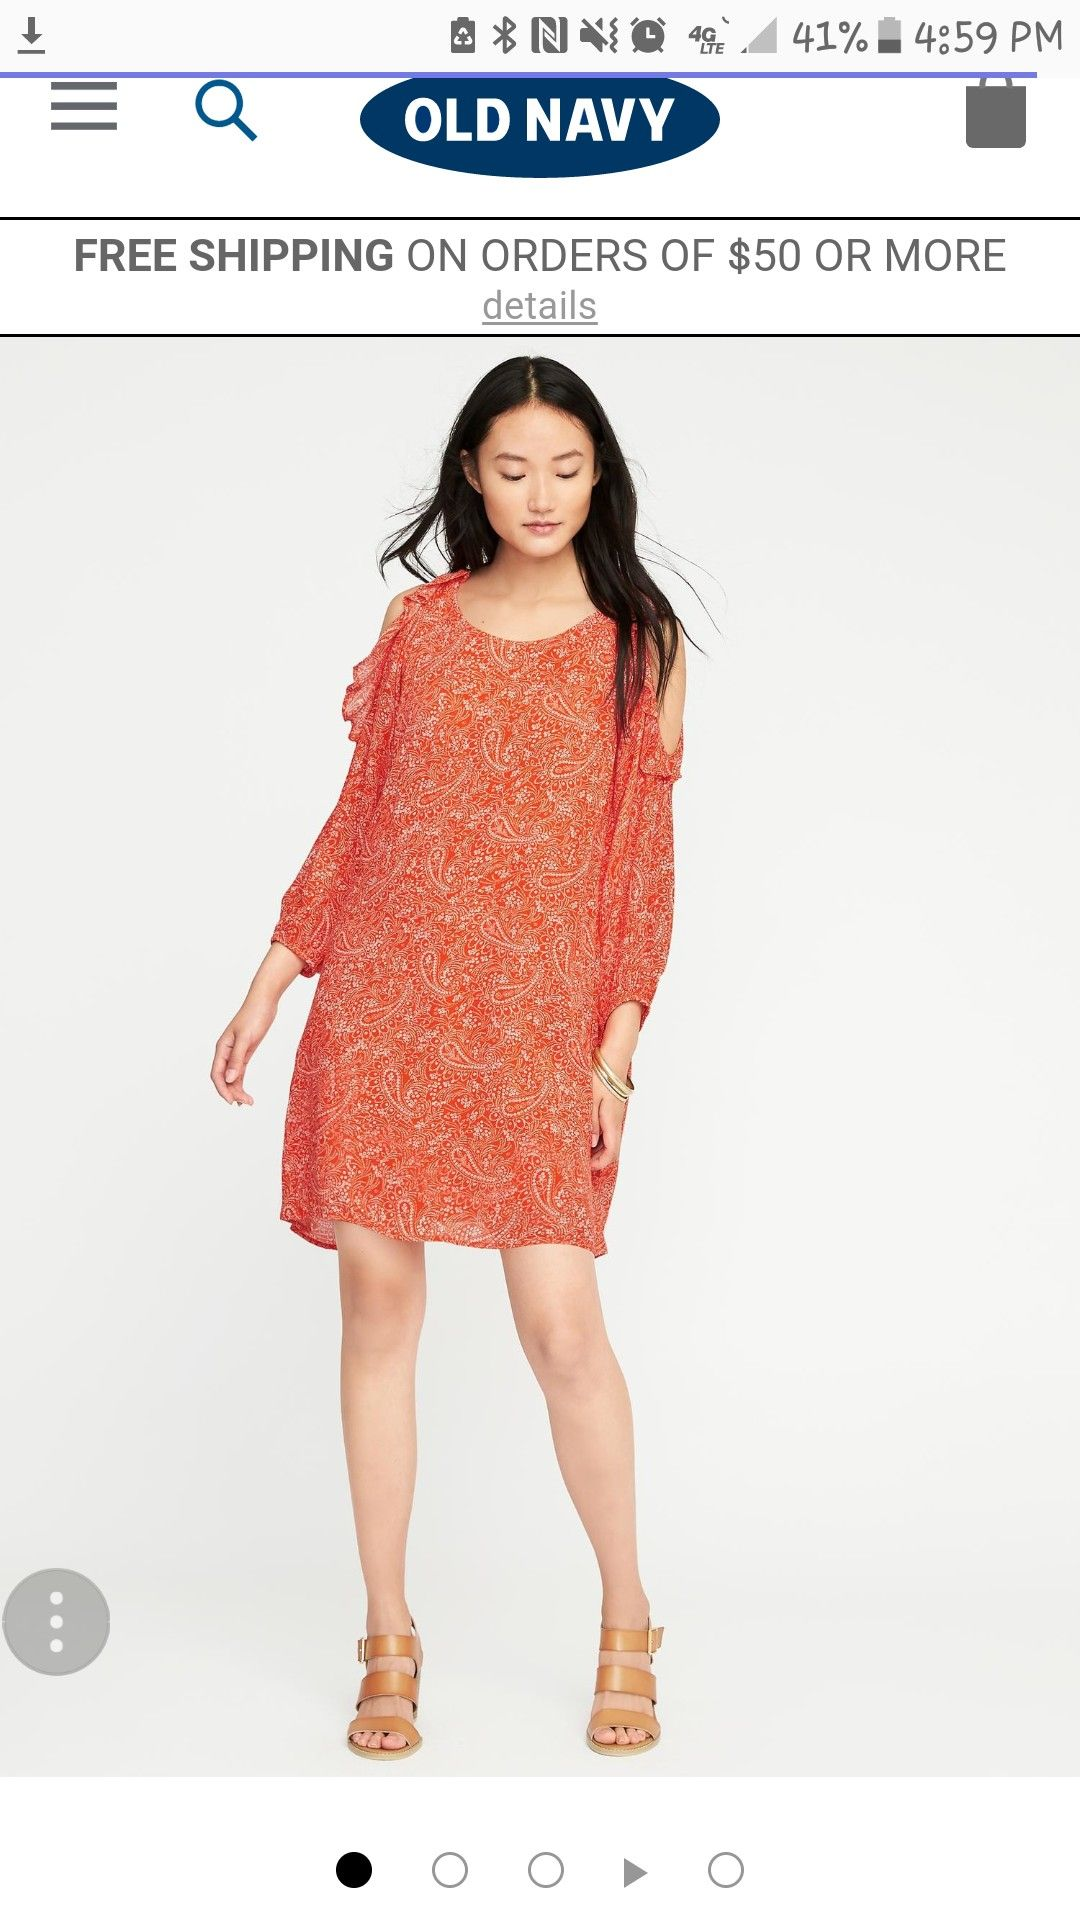 Pin by Lisa Sams on rocky top, y'all! Summer dresses